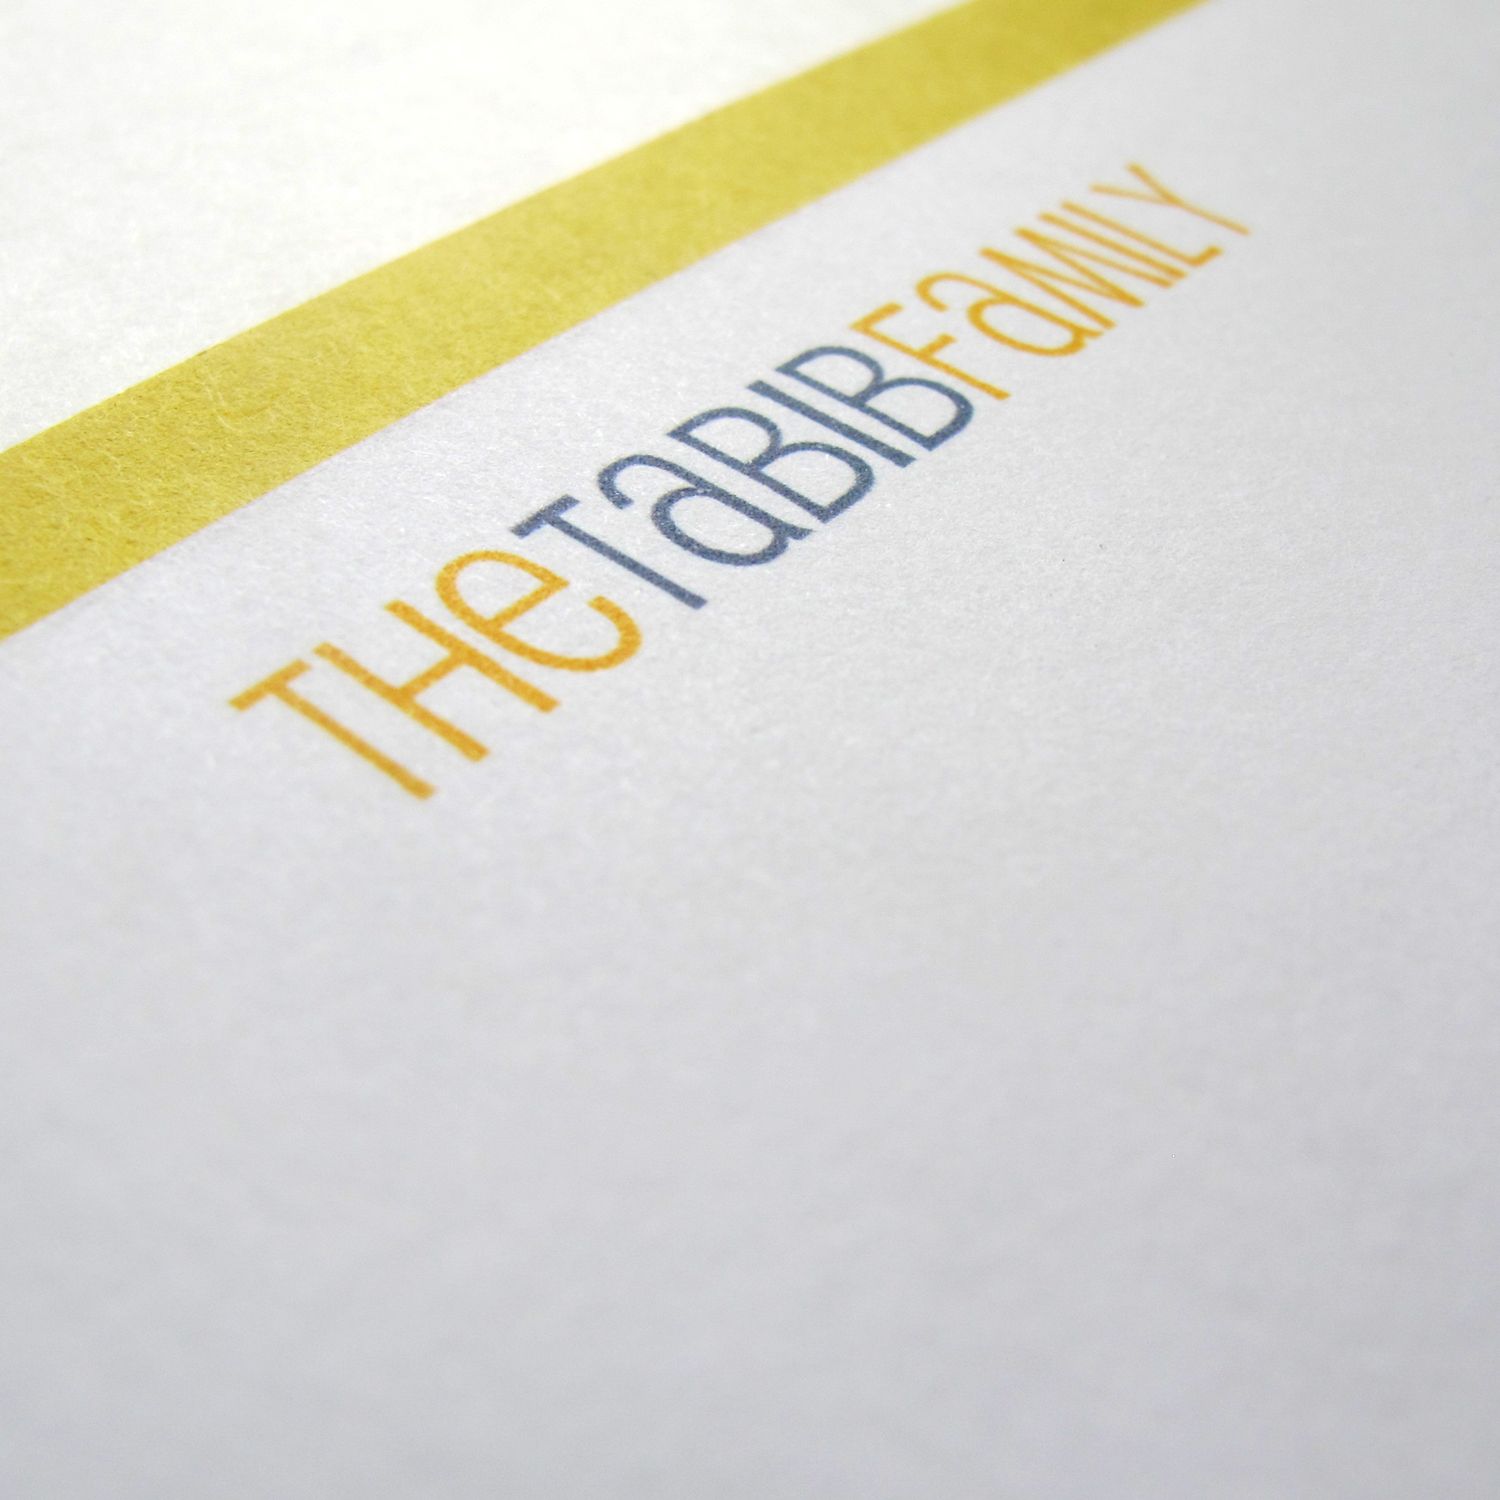 PERSONAL STATIONERY